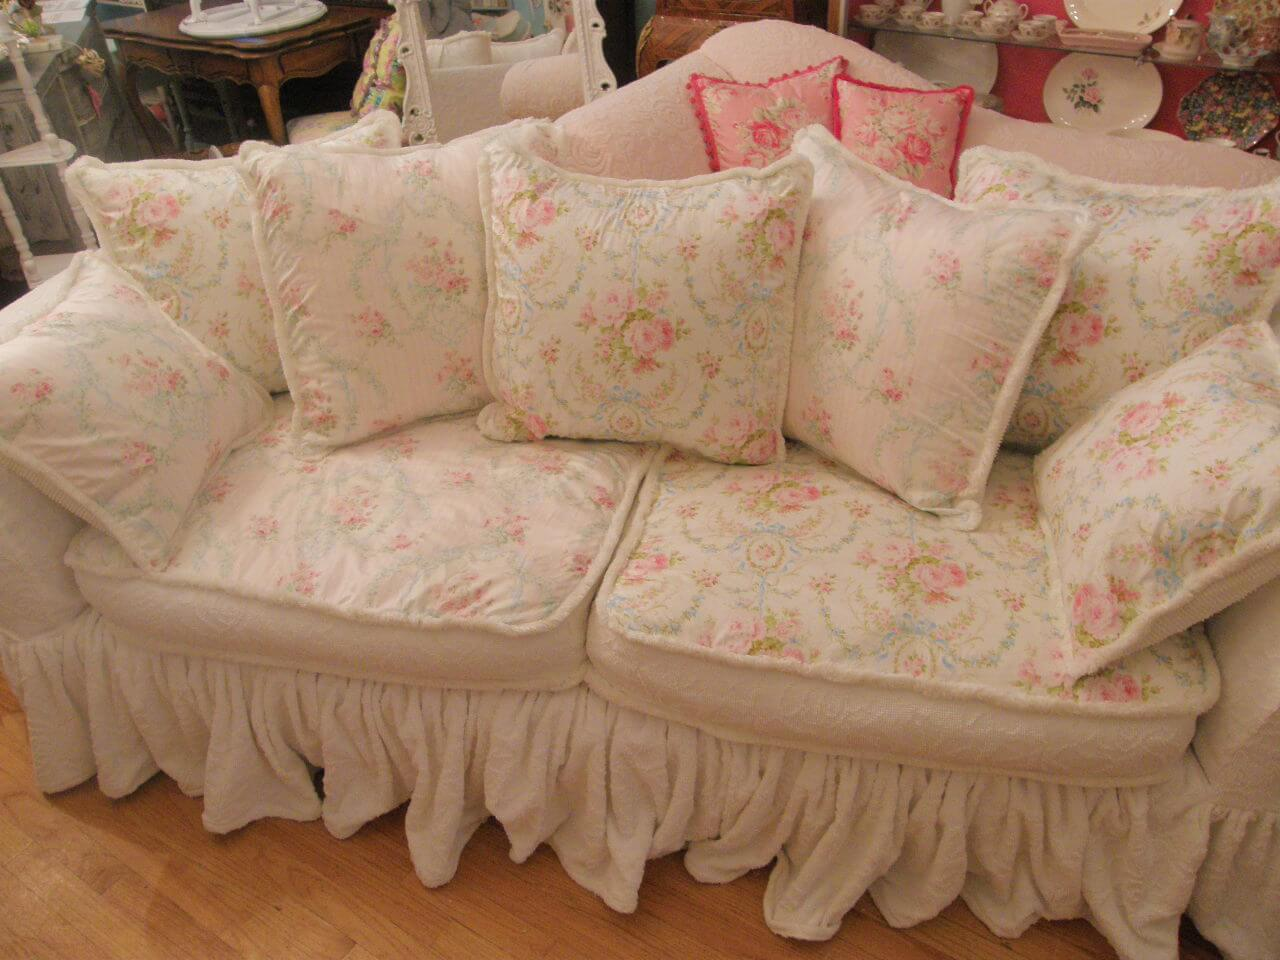 Gorgeous Flowered Sofa with Many Cushions